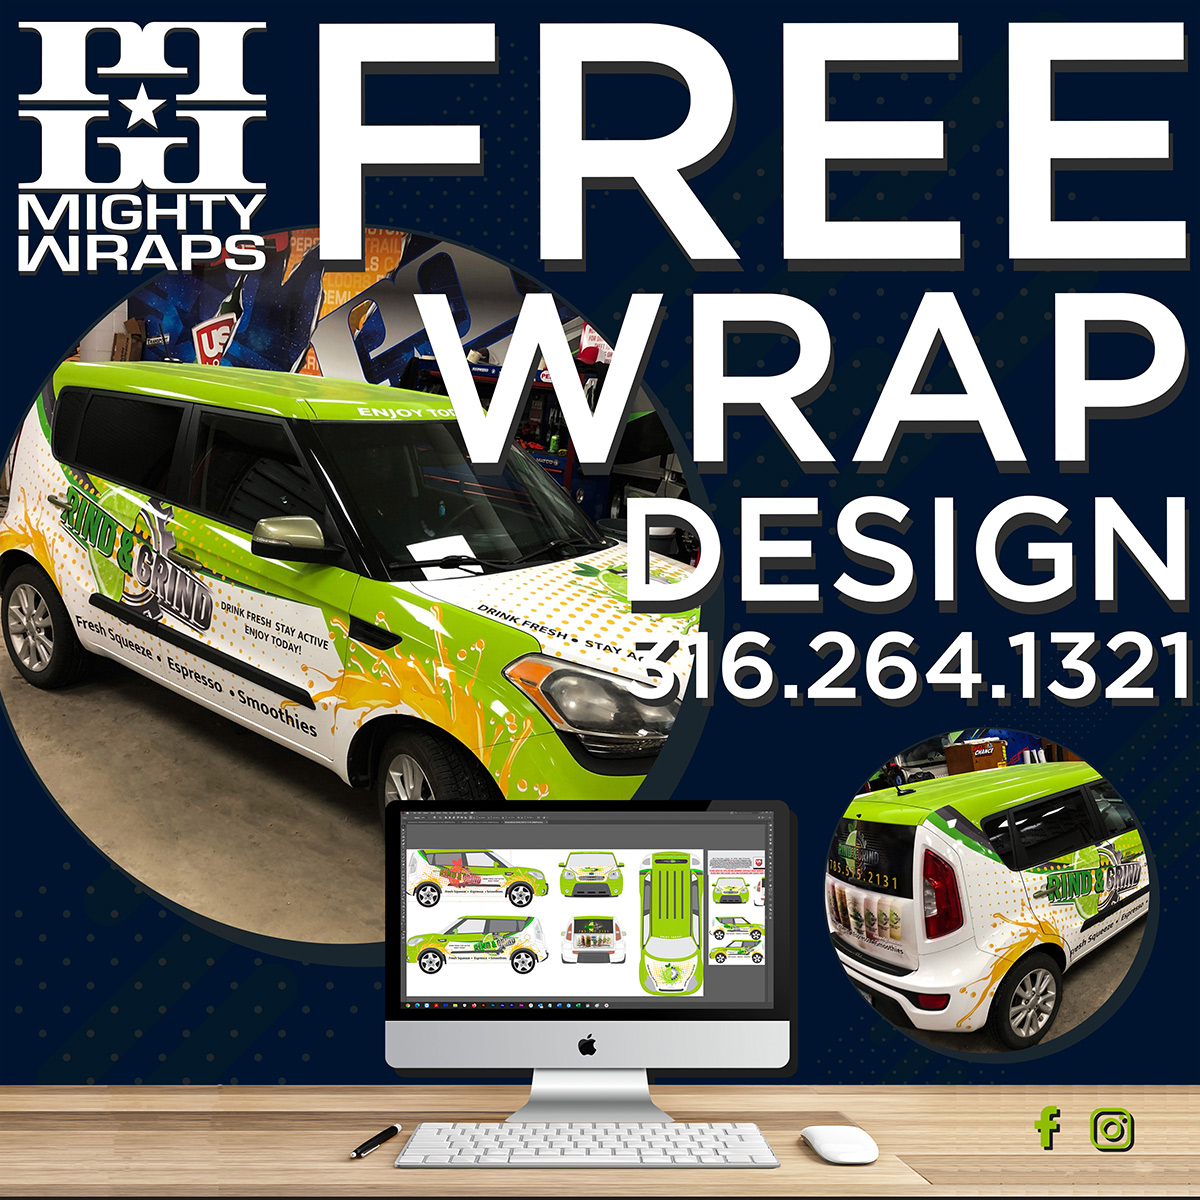 Free Wrap Design - For 2-weeks only Mighty Wraps a US Logo Company is offering free design on all commercial vehicle wraps. A $300+ Value!  https://mightywraps.com